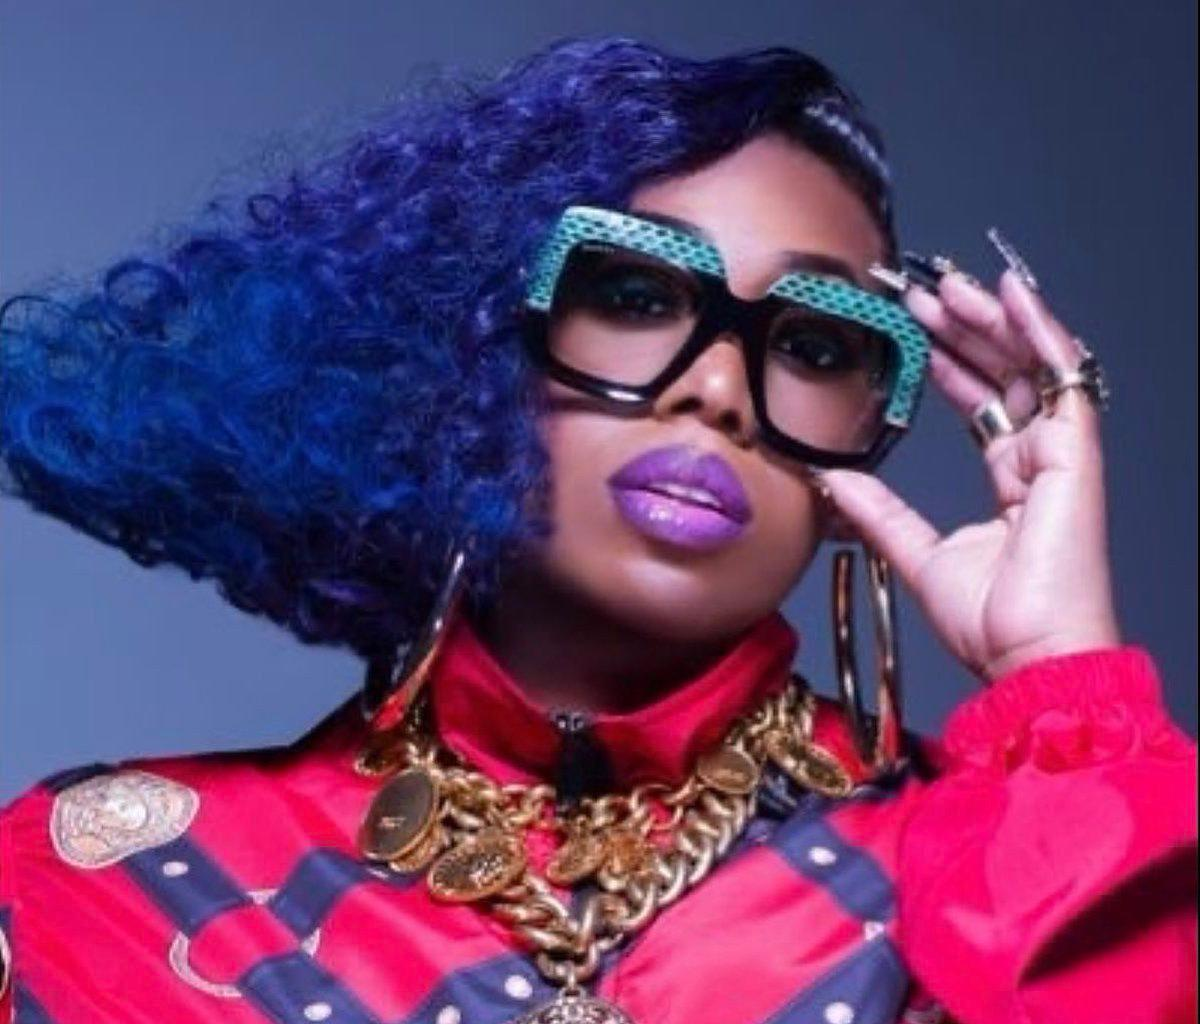 Toni Braxton Praises Missy Elliott For This Remix - See The Video She Shared